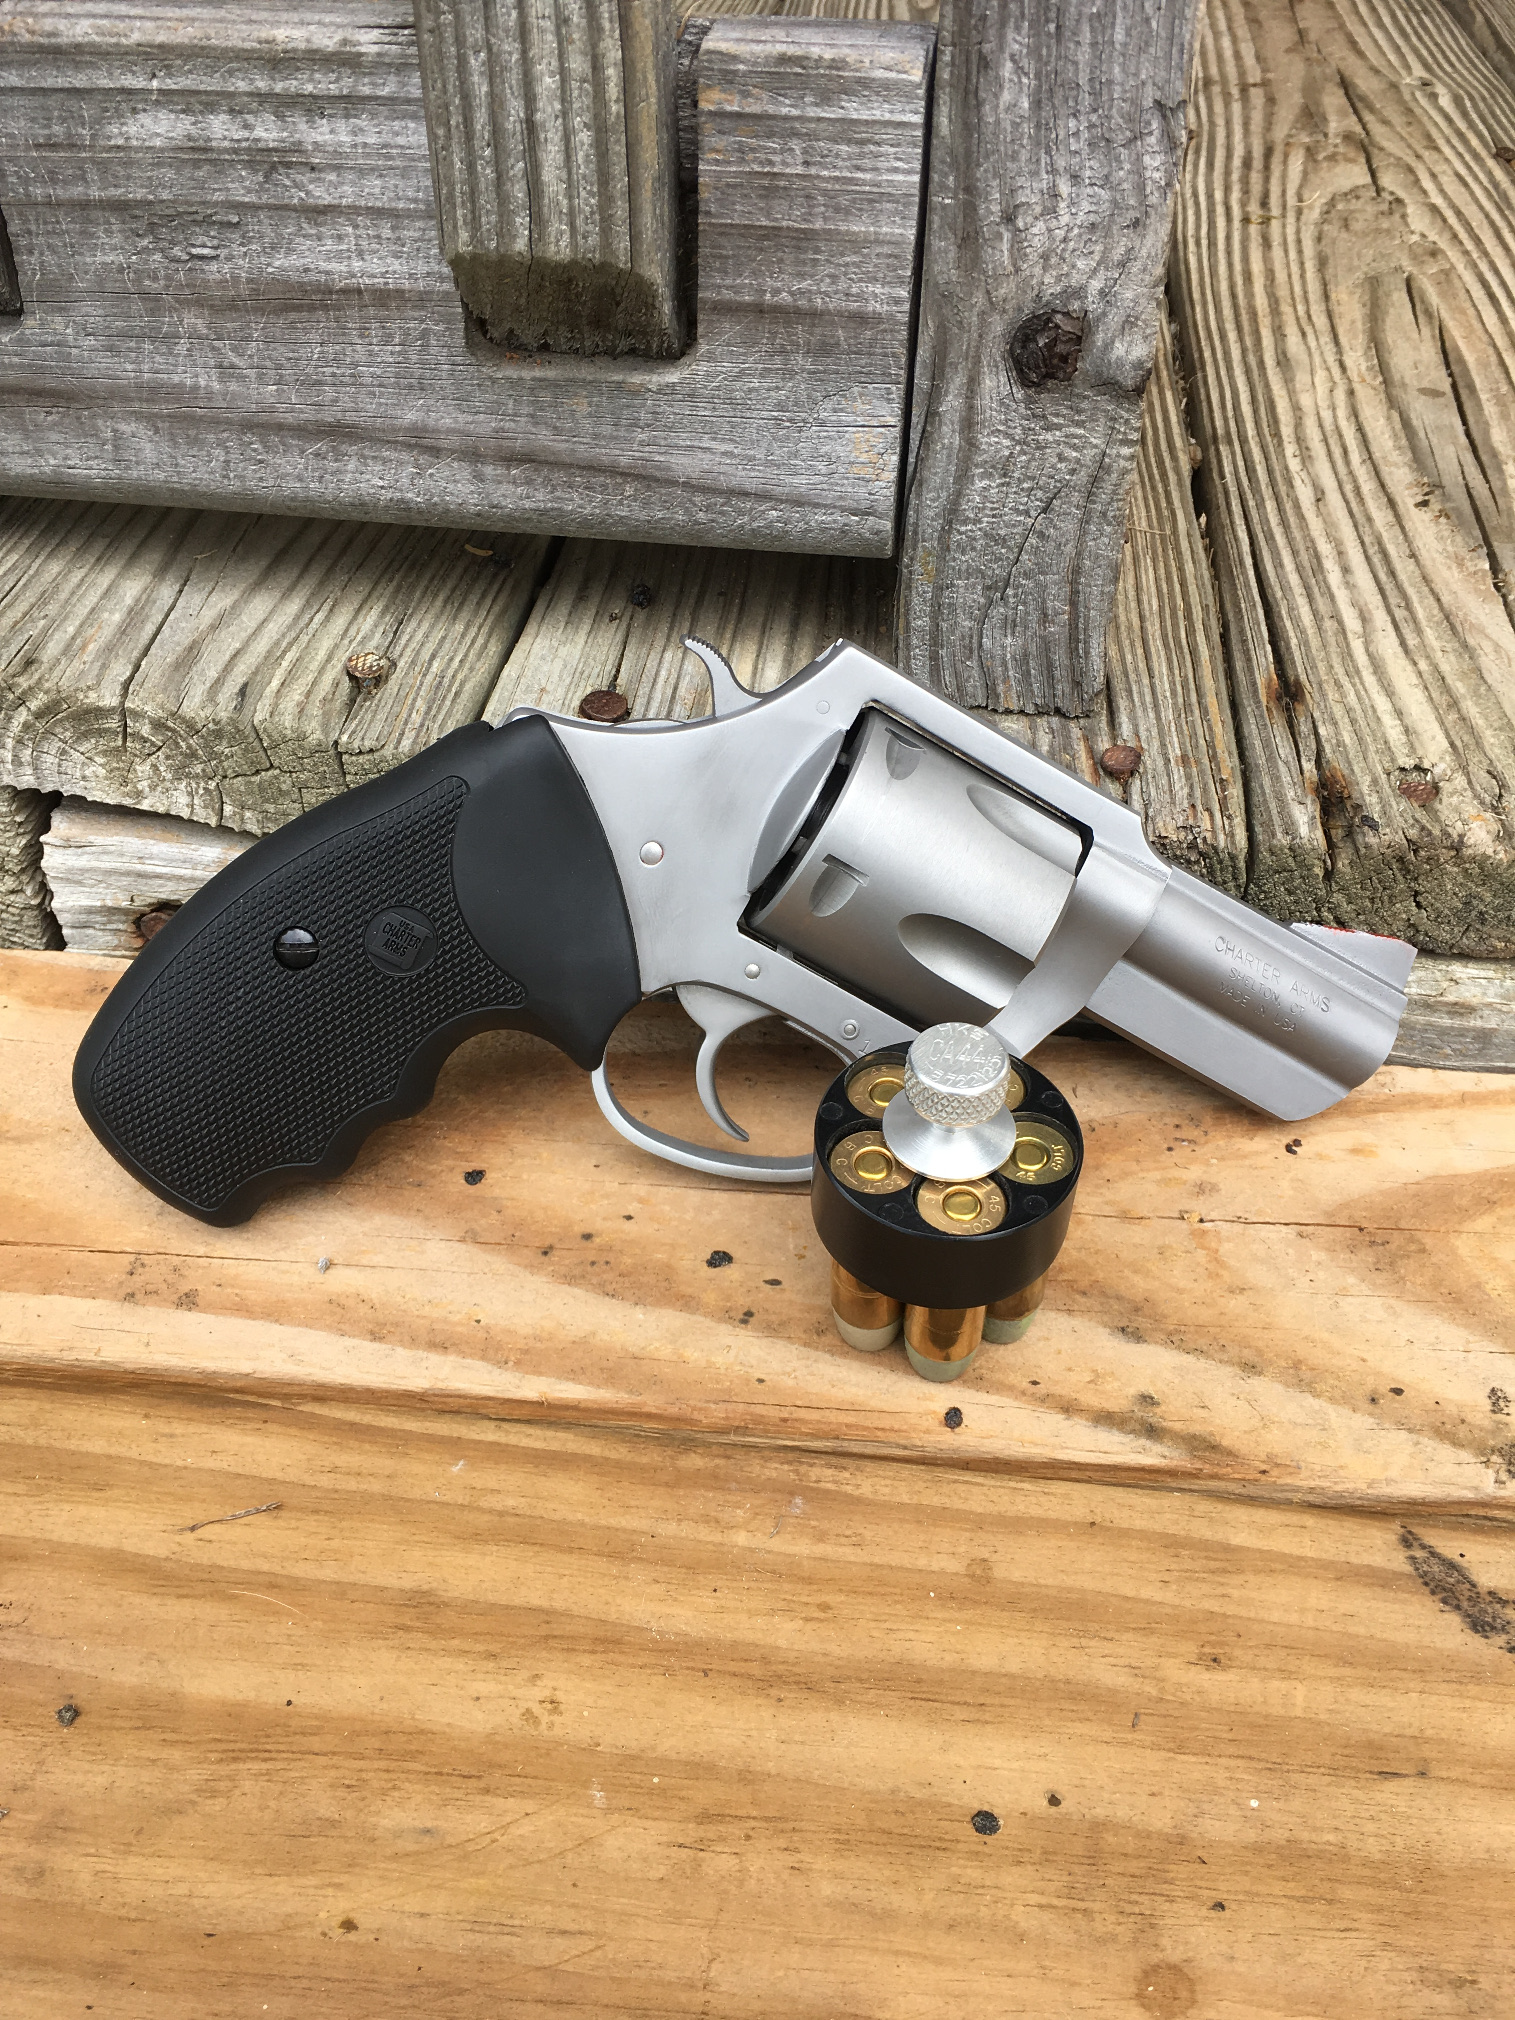 Charter Arms 45 Colt   Mississippi Gun Owners - Community